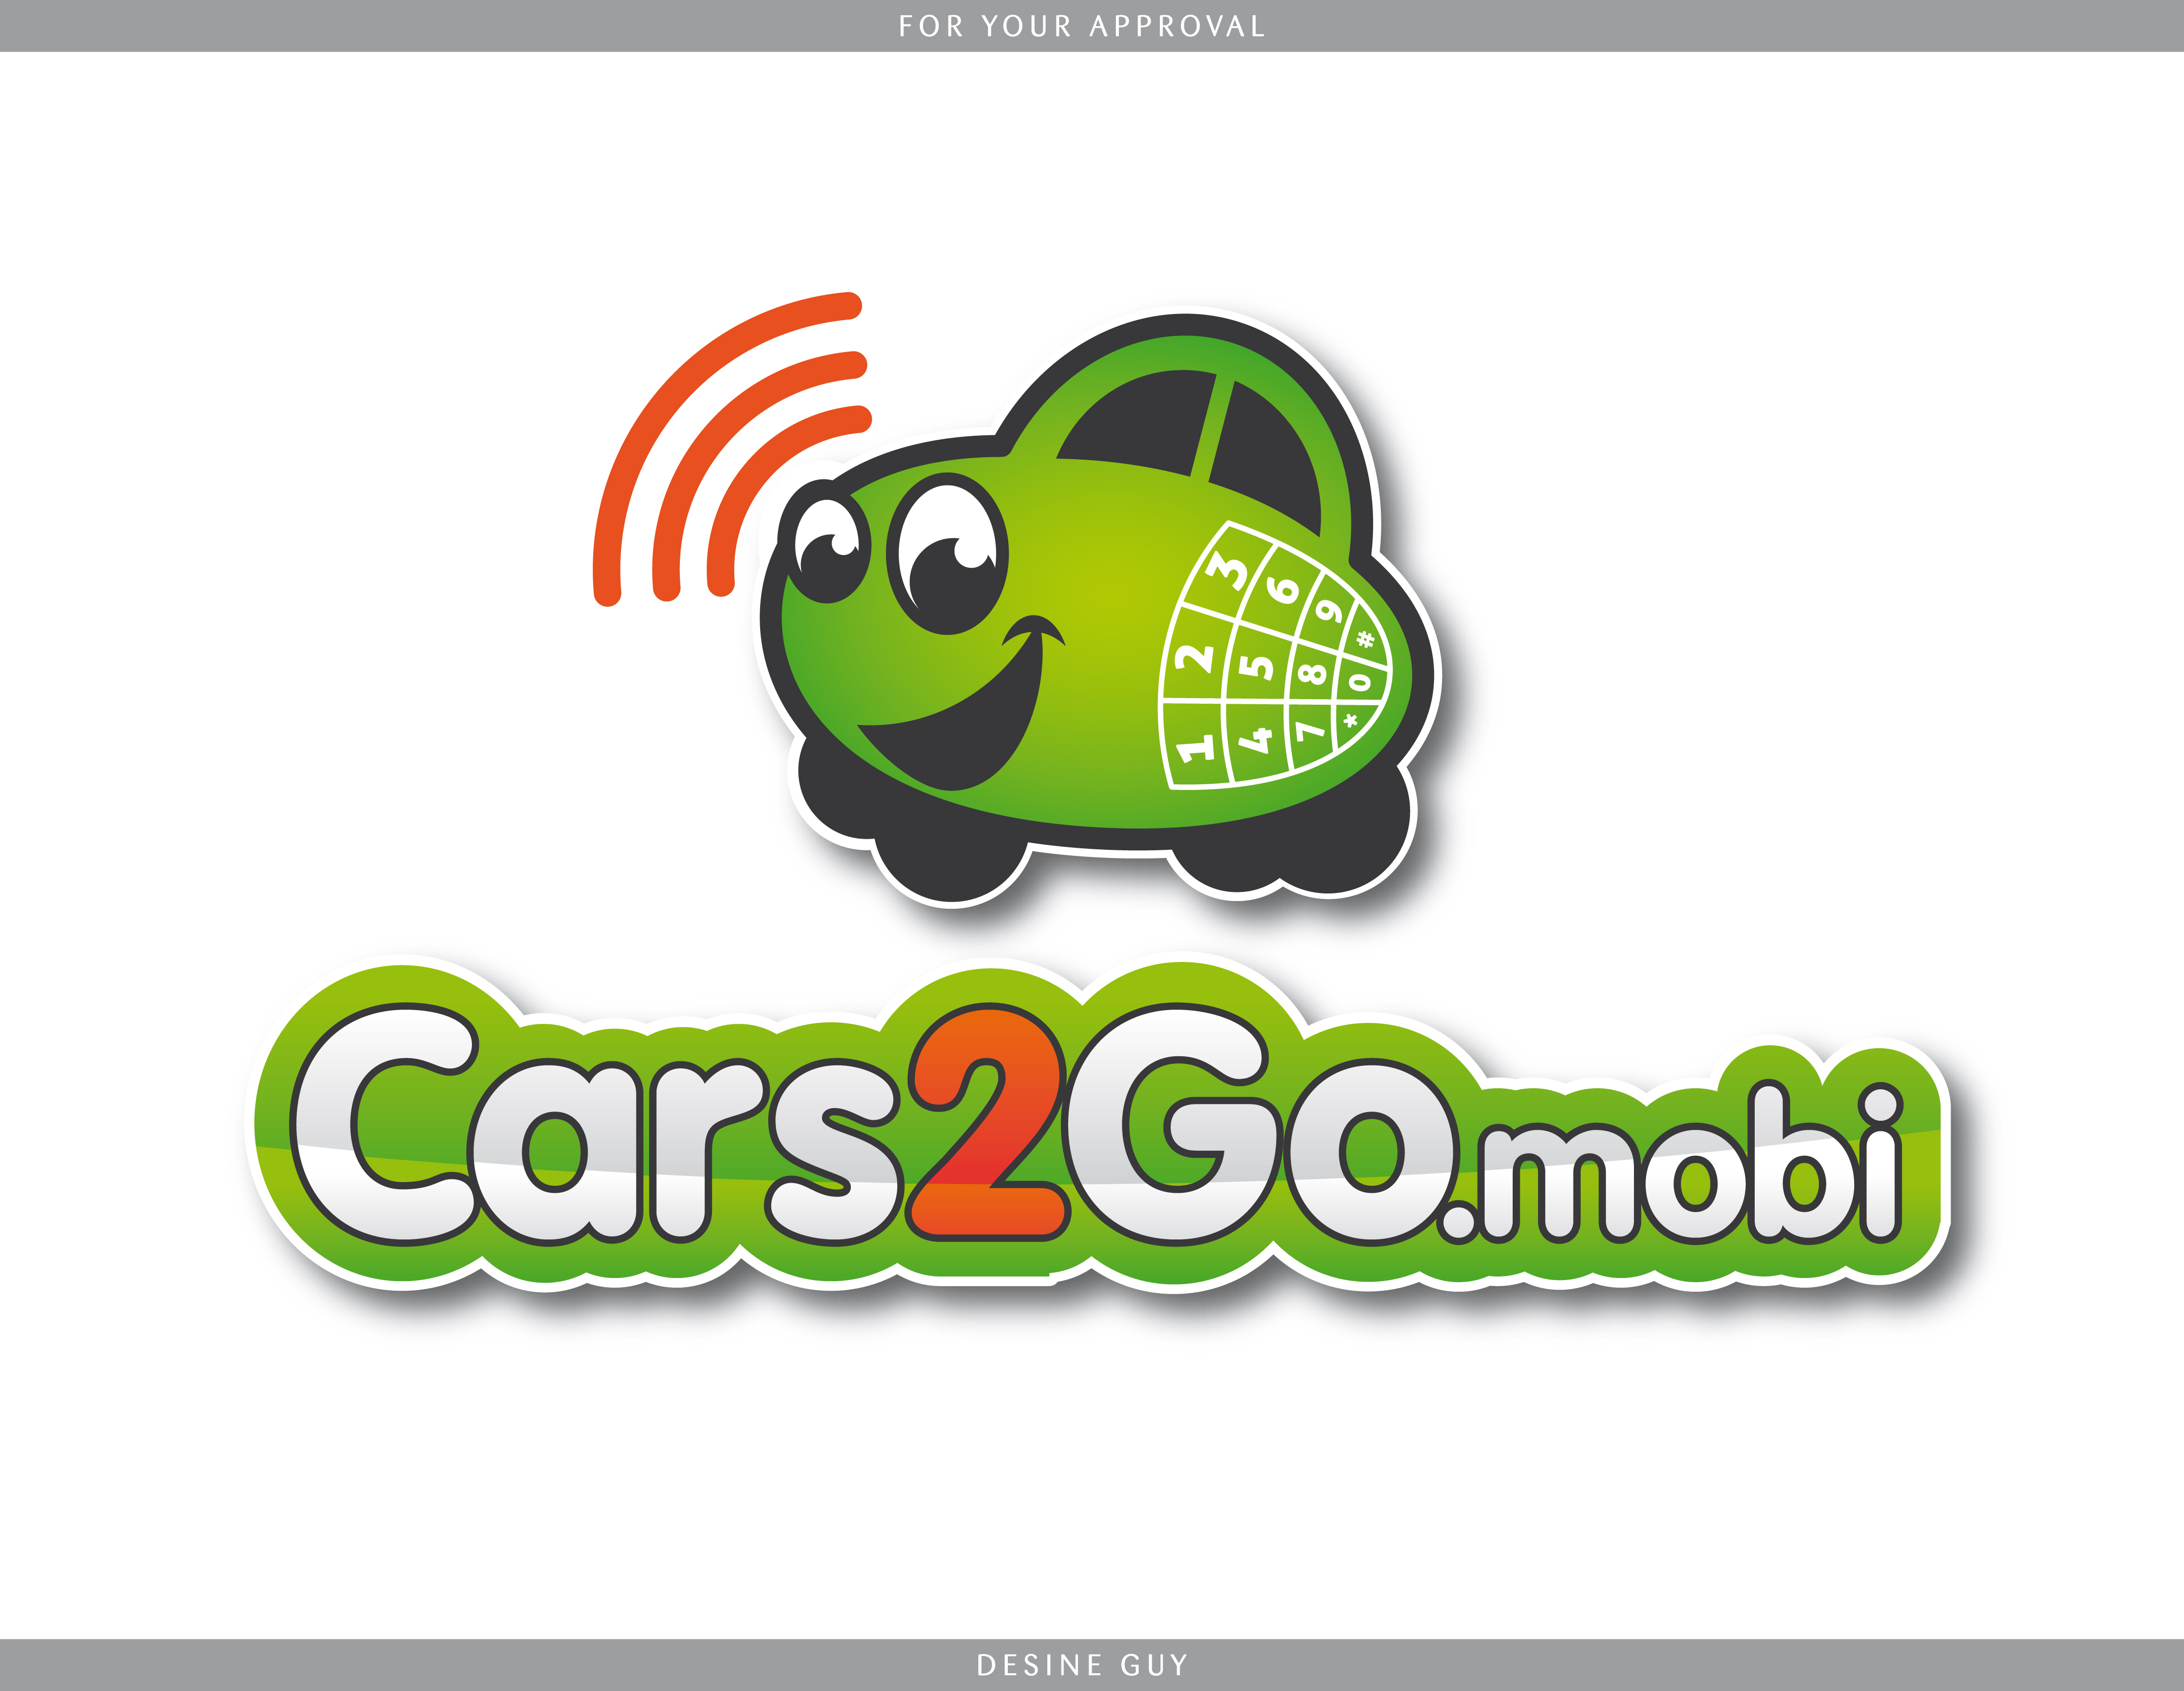 Logo Design job – Mobile Technology Service for Car Buyers – Winning design by S.R.Graphic Design